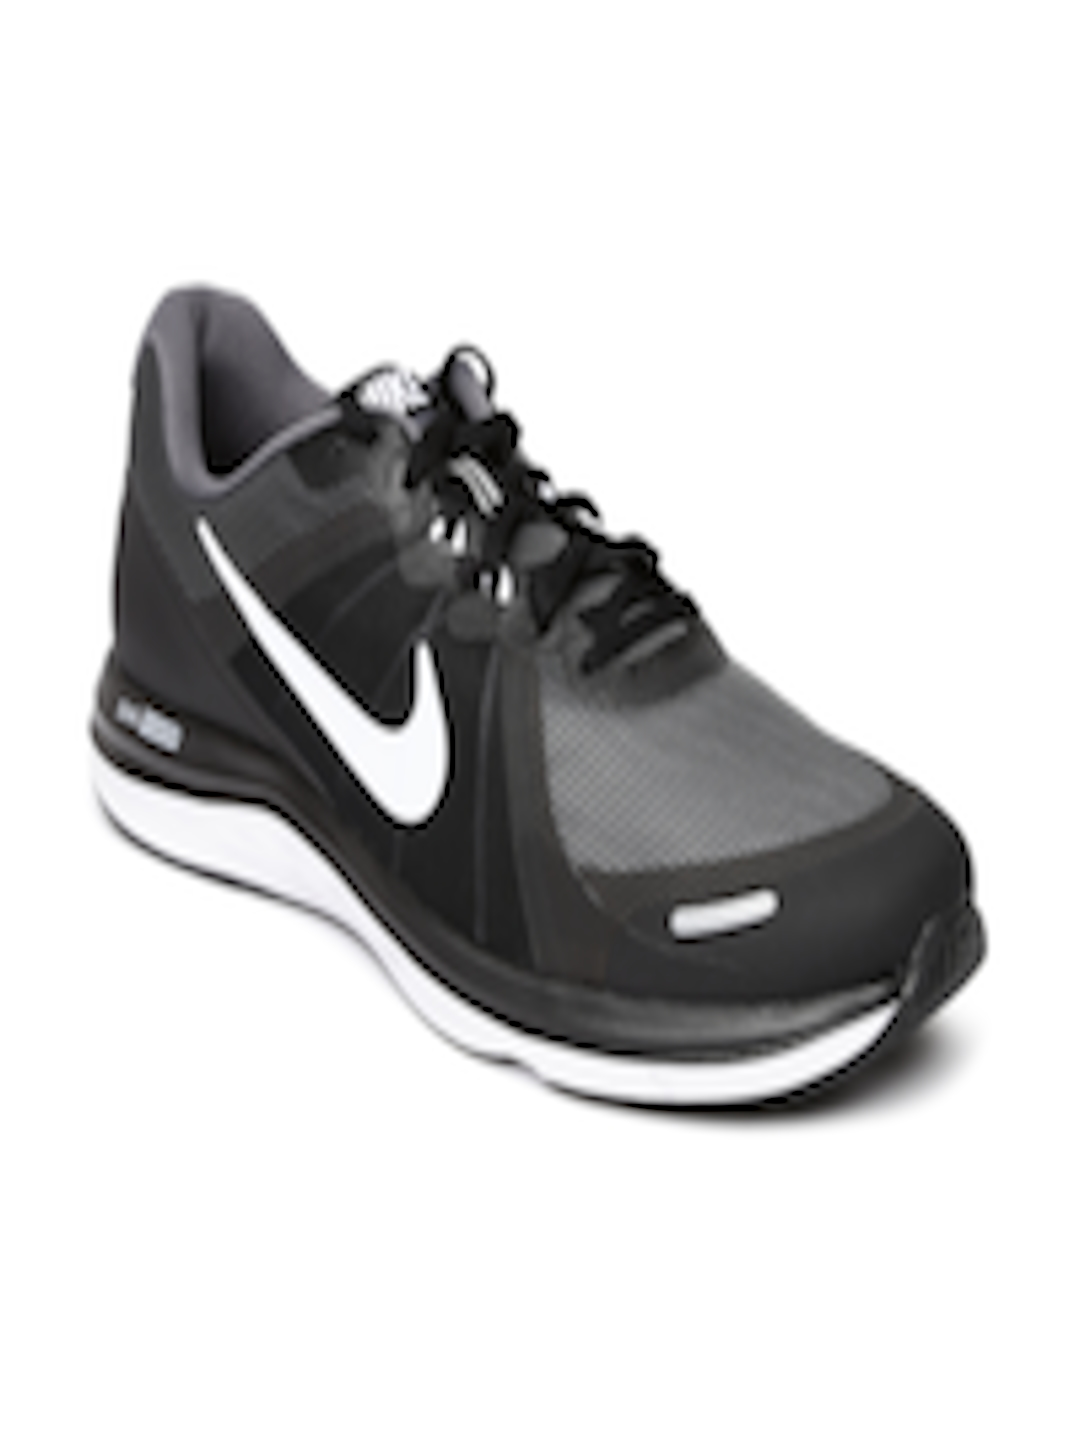 online retailer f37c8 17778 Buy Nike Men Charcoal NIKE DUAL FUSION X 2 Running Shoes - Sports Shoes for  Men 1602462   Myntra